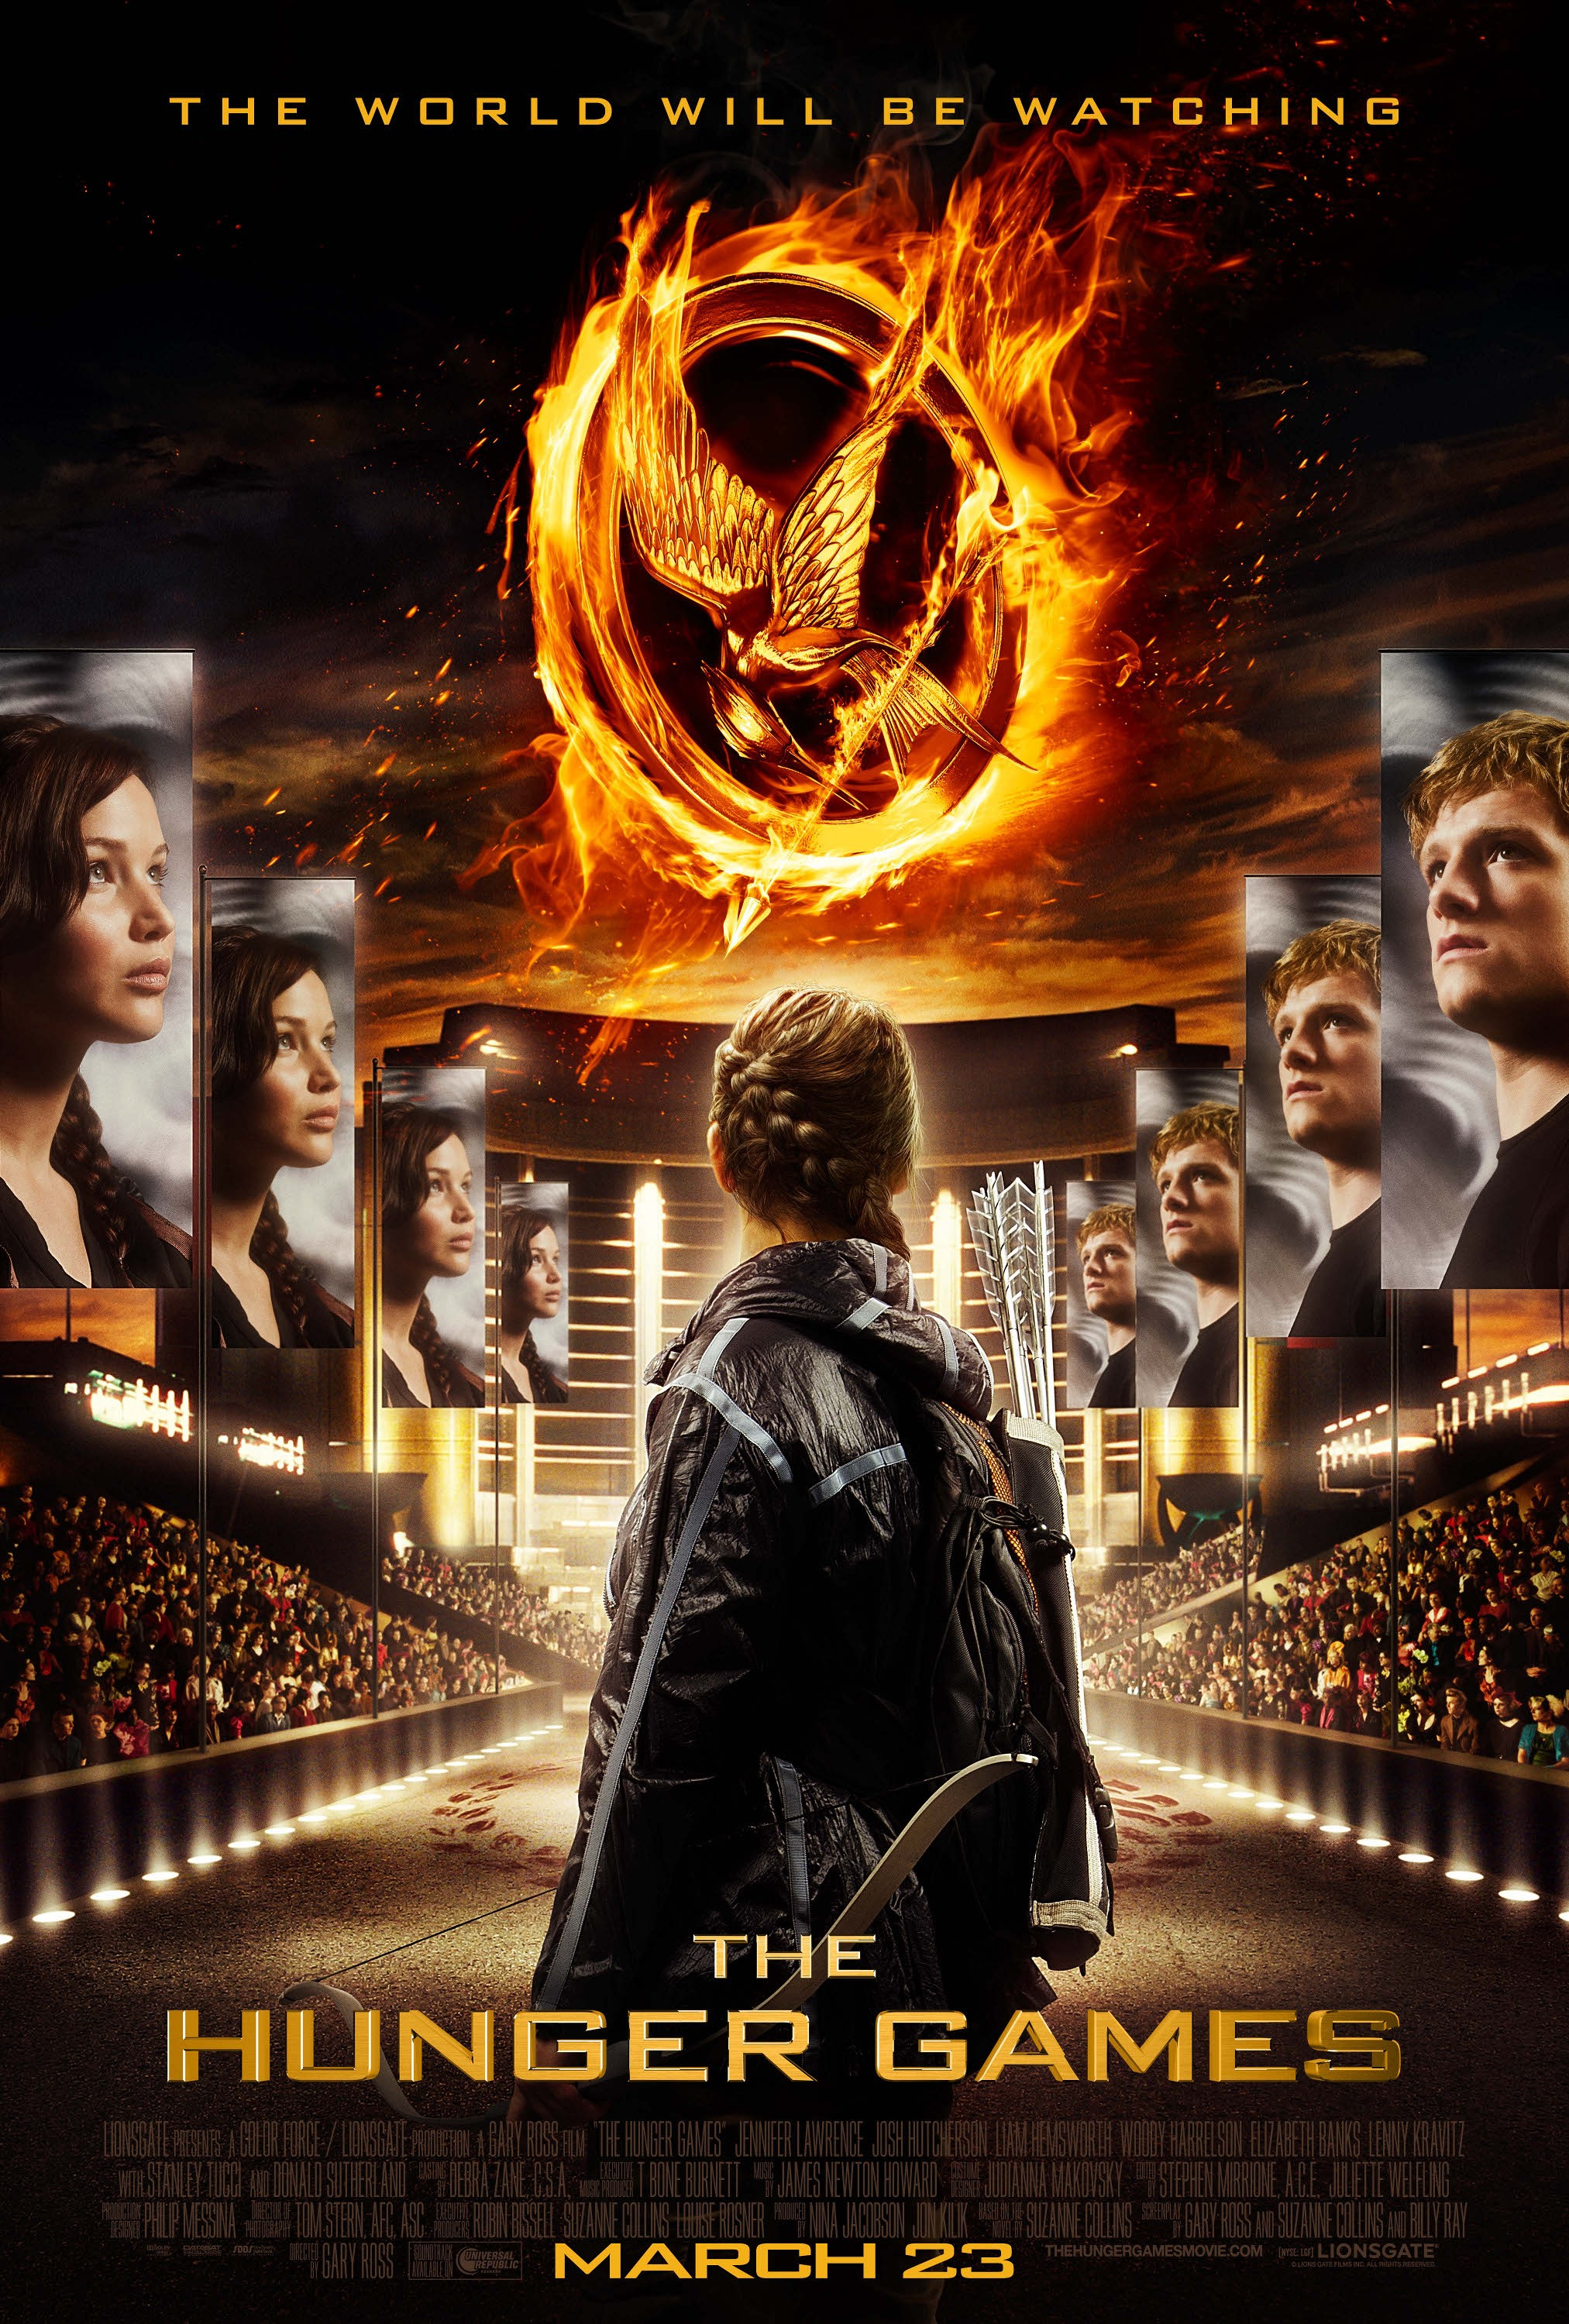 Contest Is Over Win Passes To The Hunger Games Dallas Mall Tour